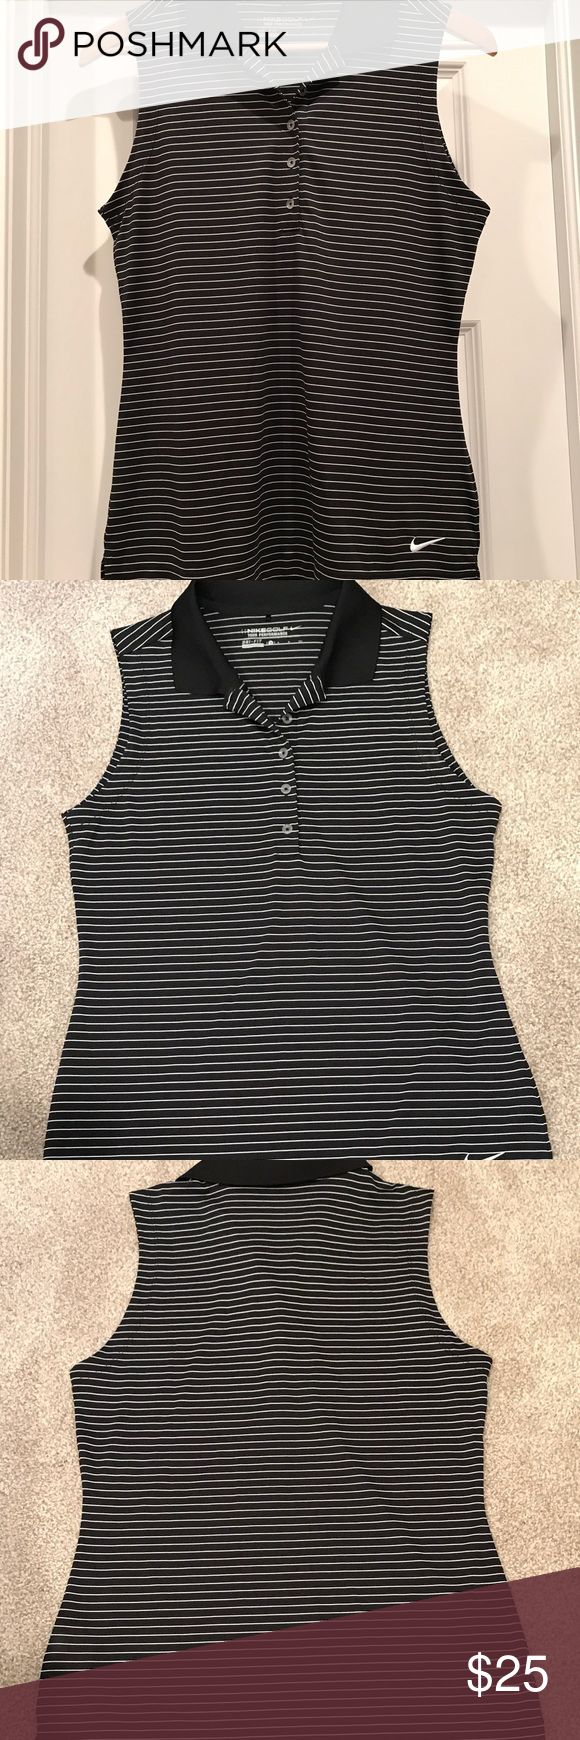 Nike 🏌 Women's Golf This Nike sleeveless golf shirt is dry fit technology, bound to enhance your game!! Even if it's because you just look good 😊 super comfy, barely worn--no signs of wear rips/stains/tears/smells. Make an offer, before you hit the links again! Smoke free home. Nike Tops Tank Tops